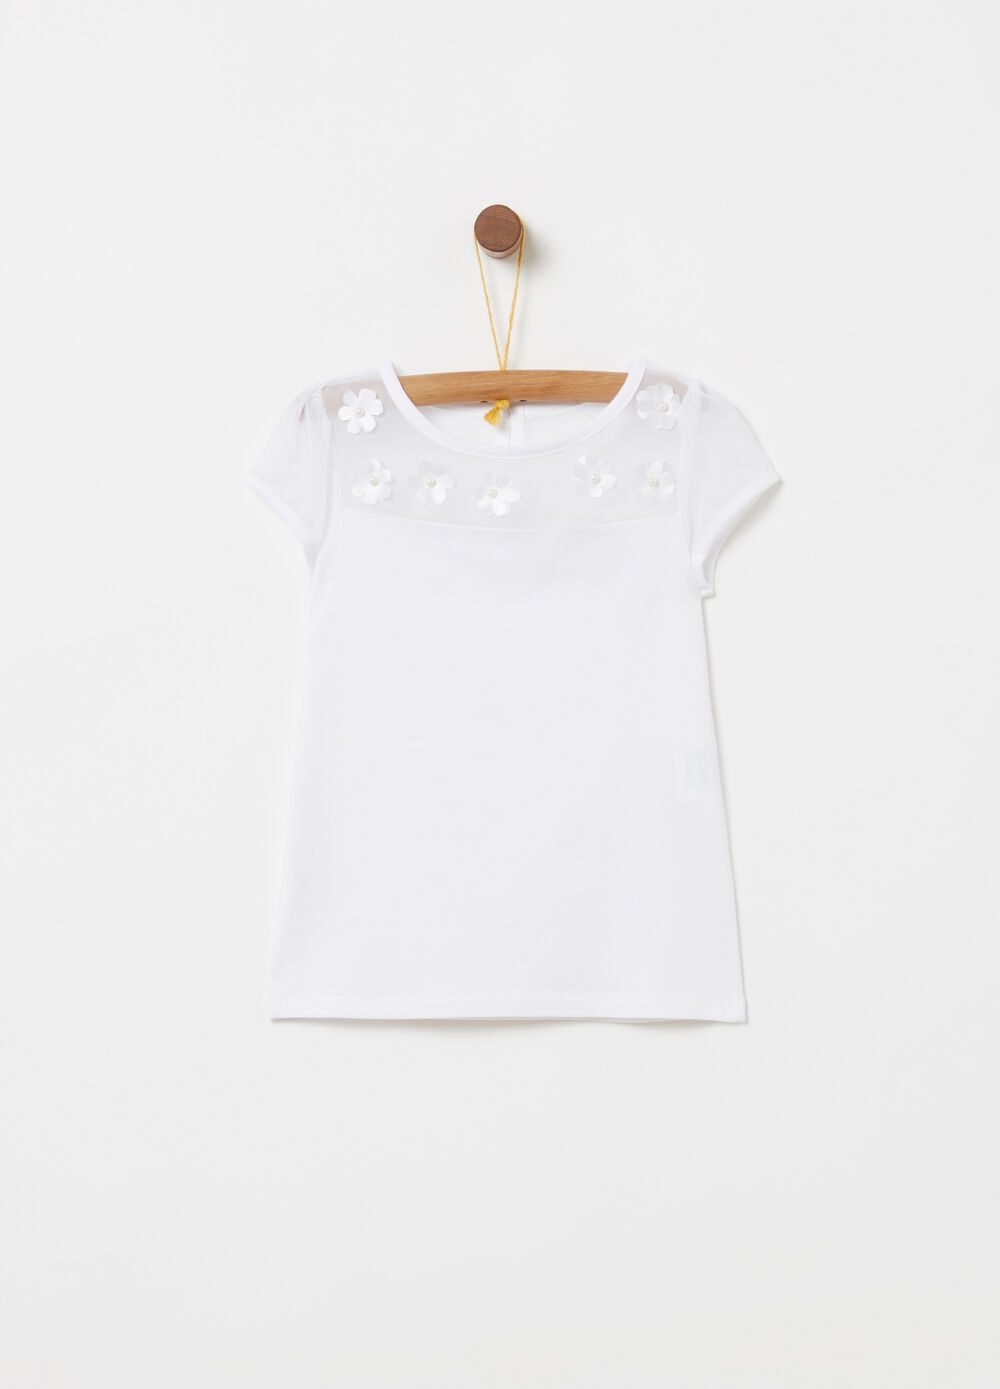 T-shirt with transparent insert and flowers